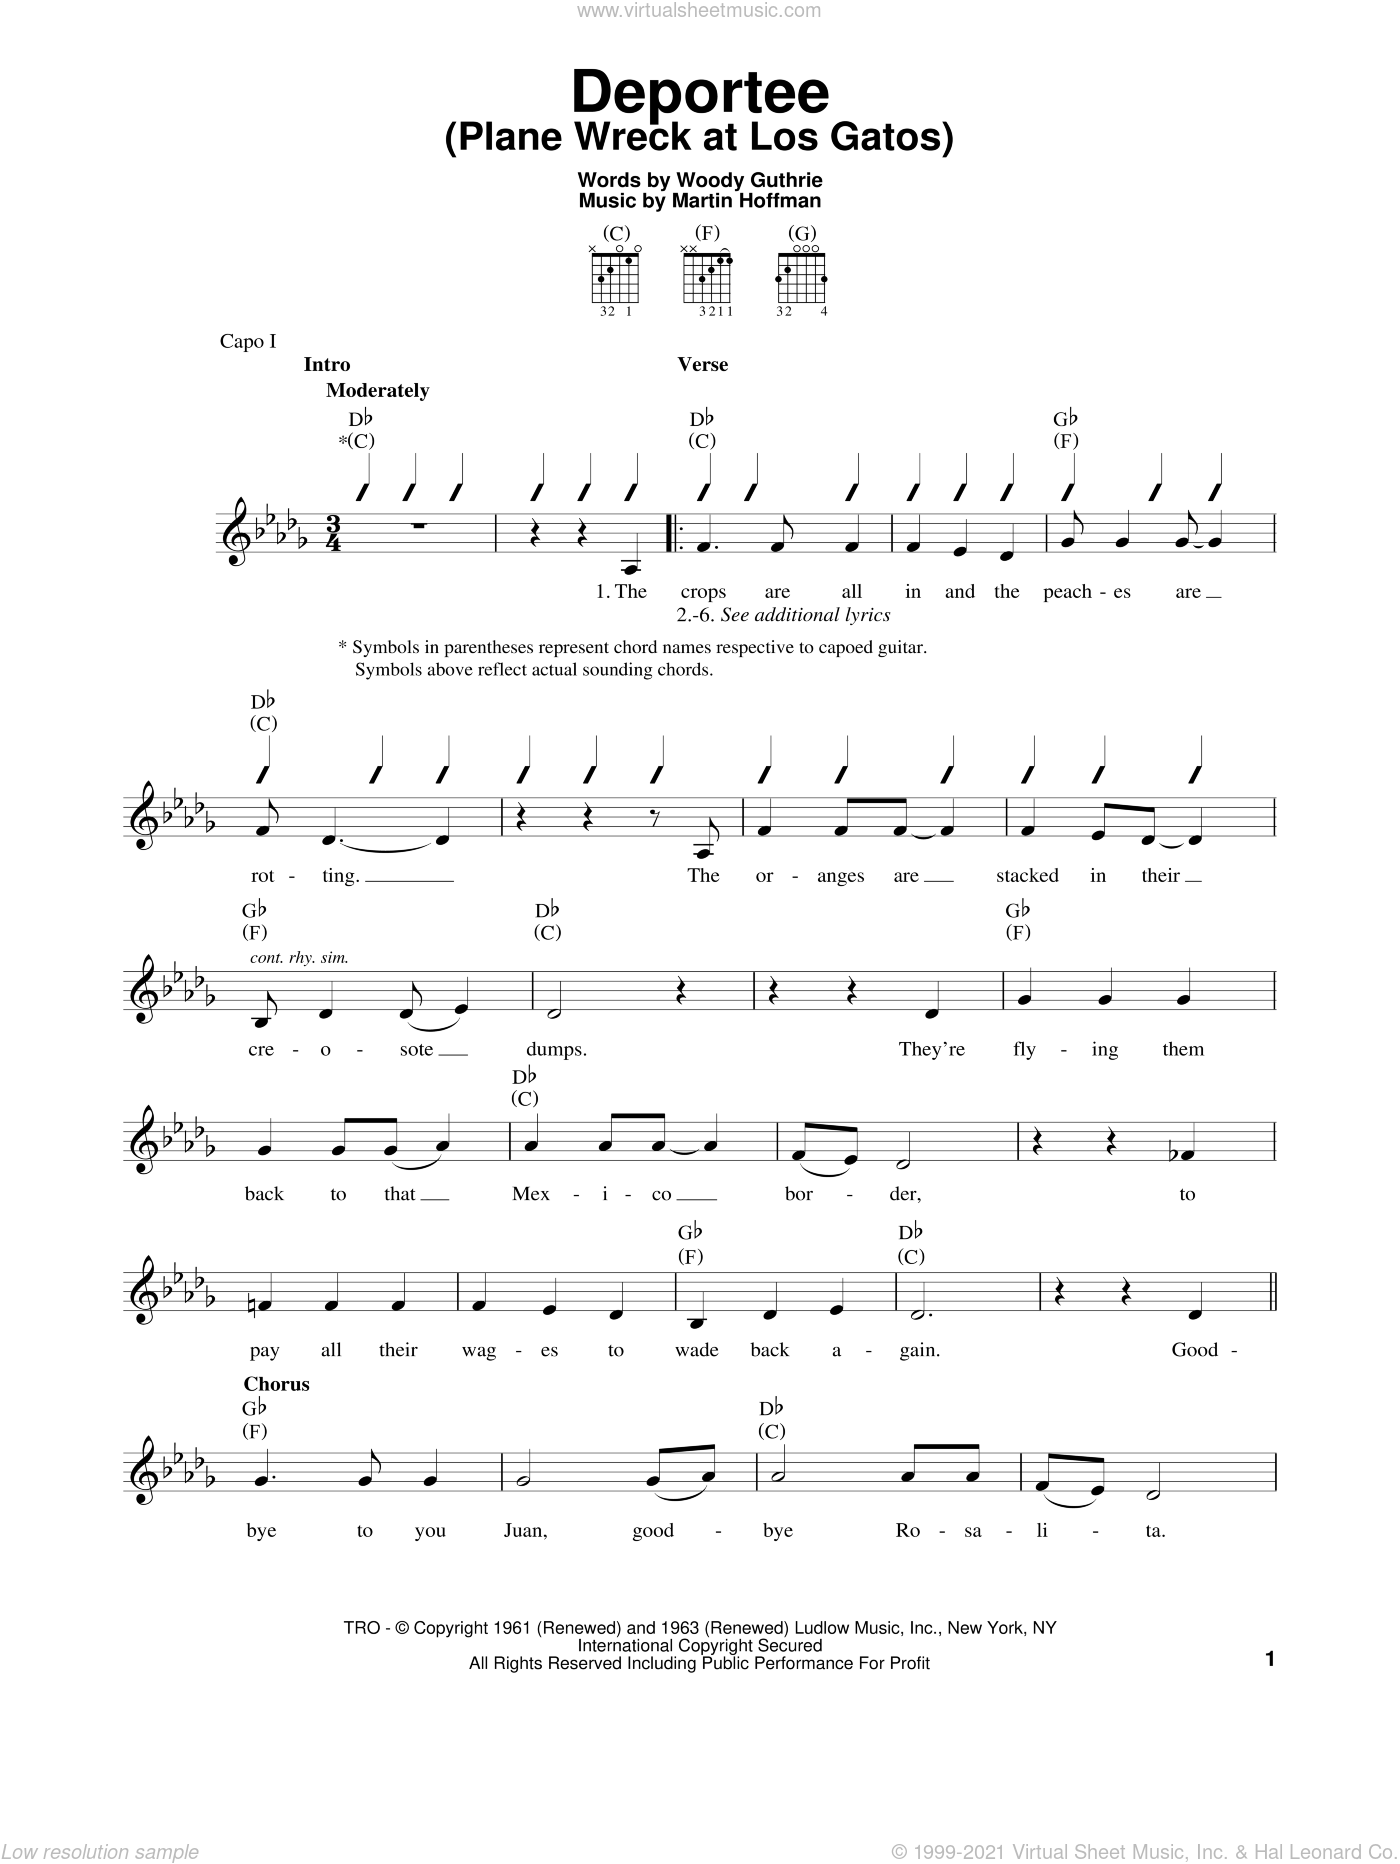 Deportee (Plane Wreck At Los Gatos) sheet music for guitar solo (chords) by Martin Hoffman